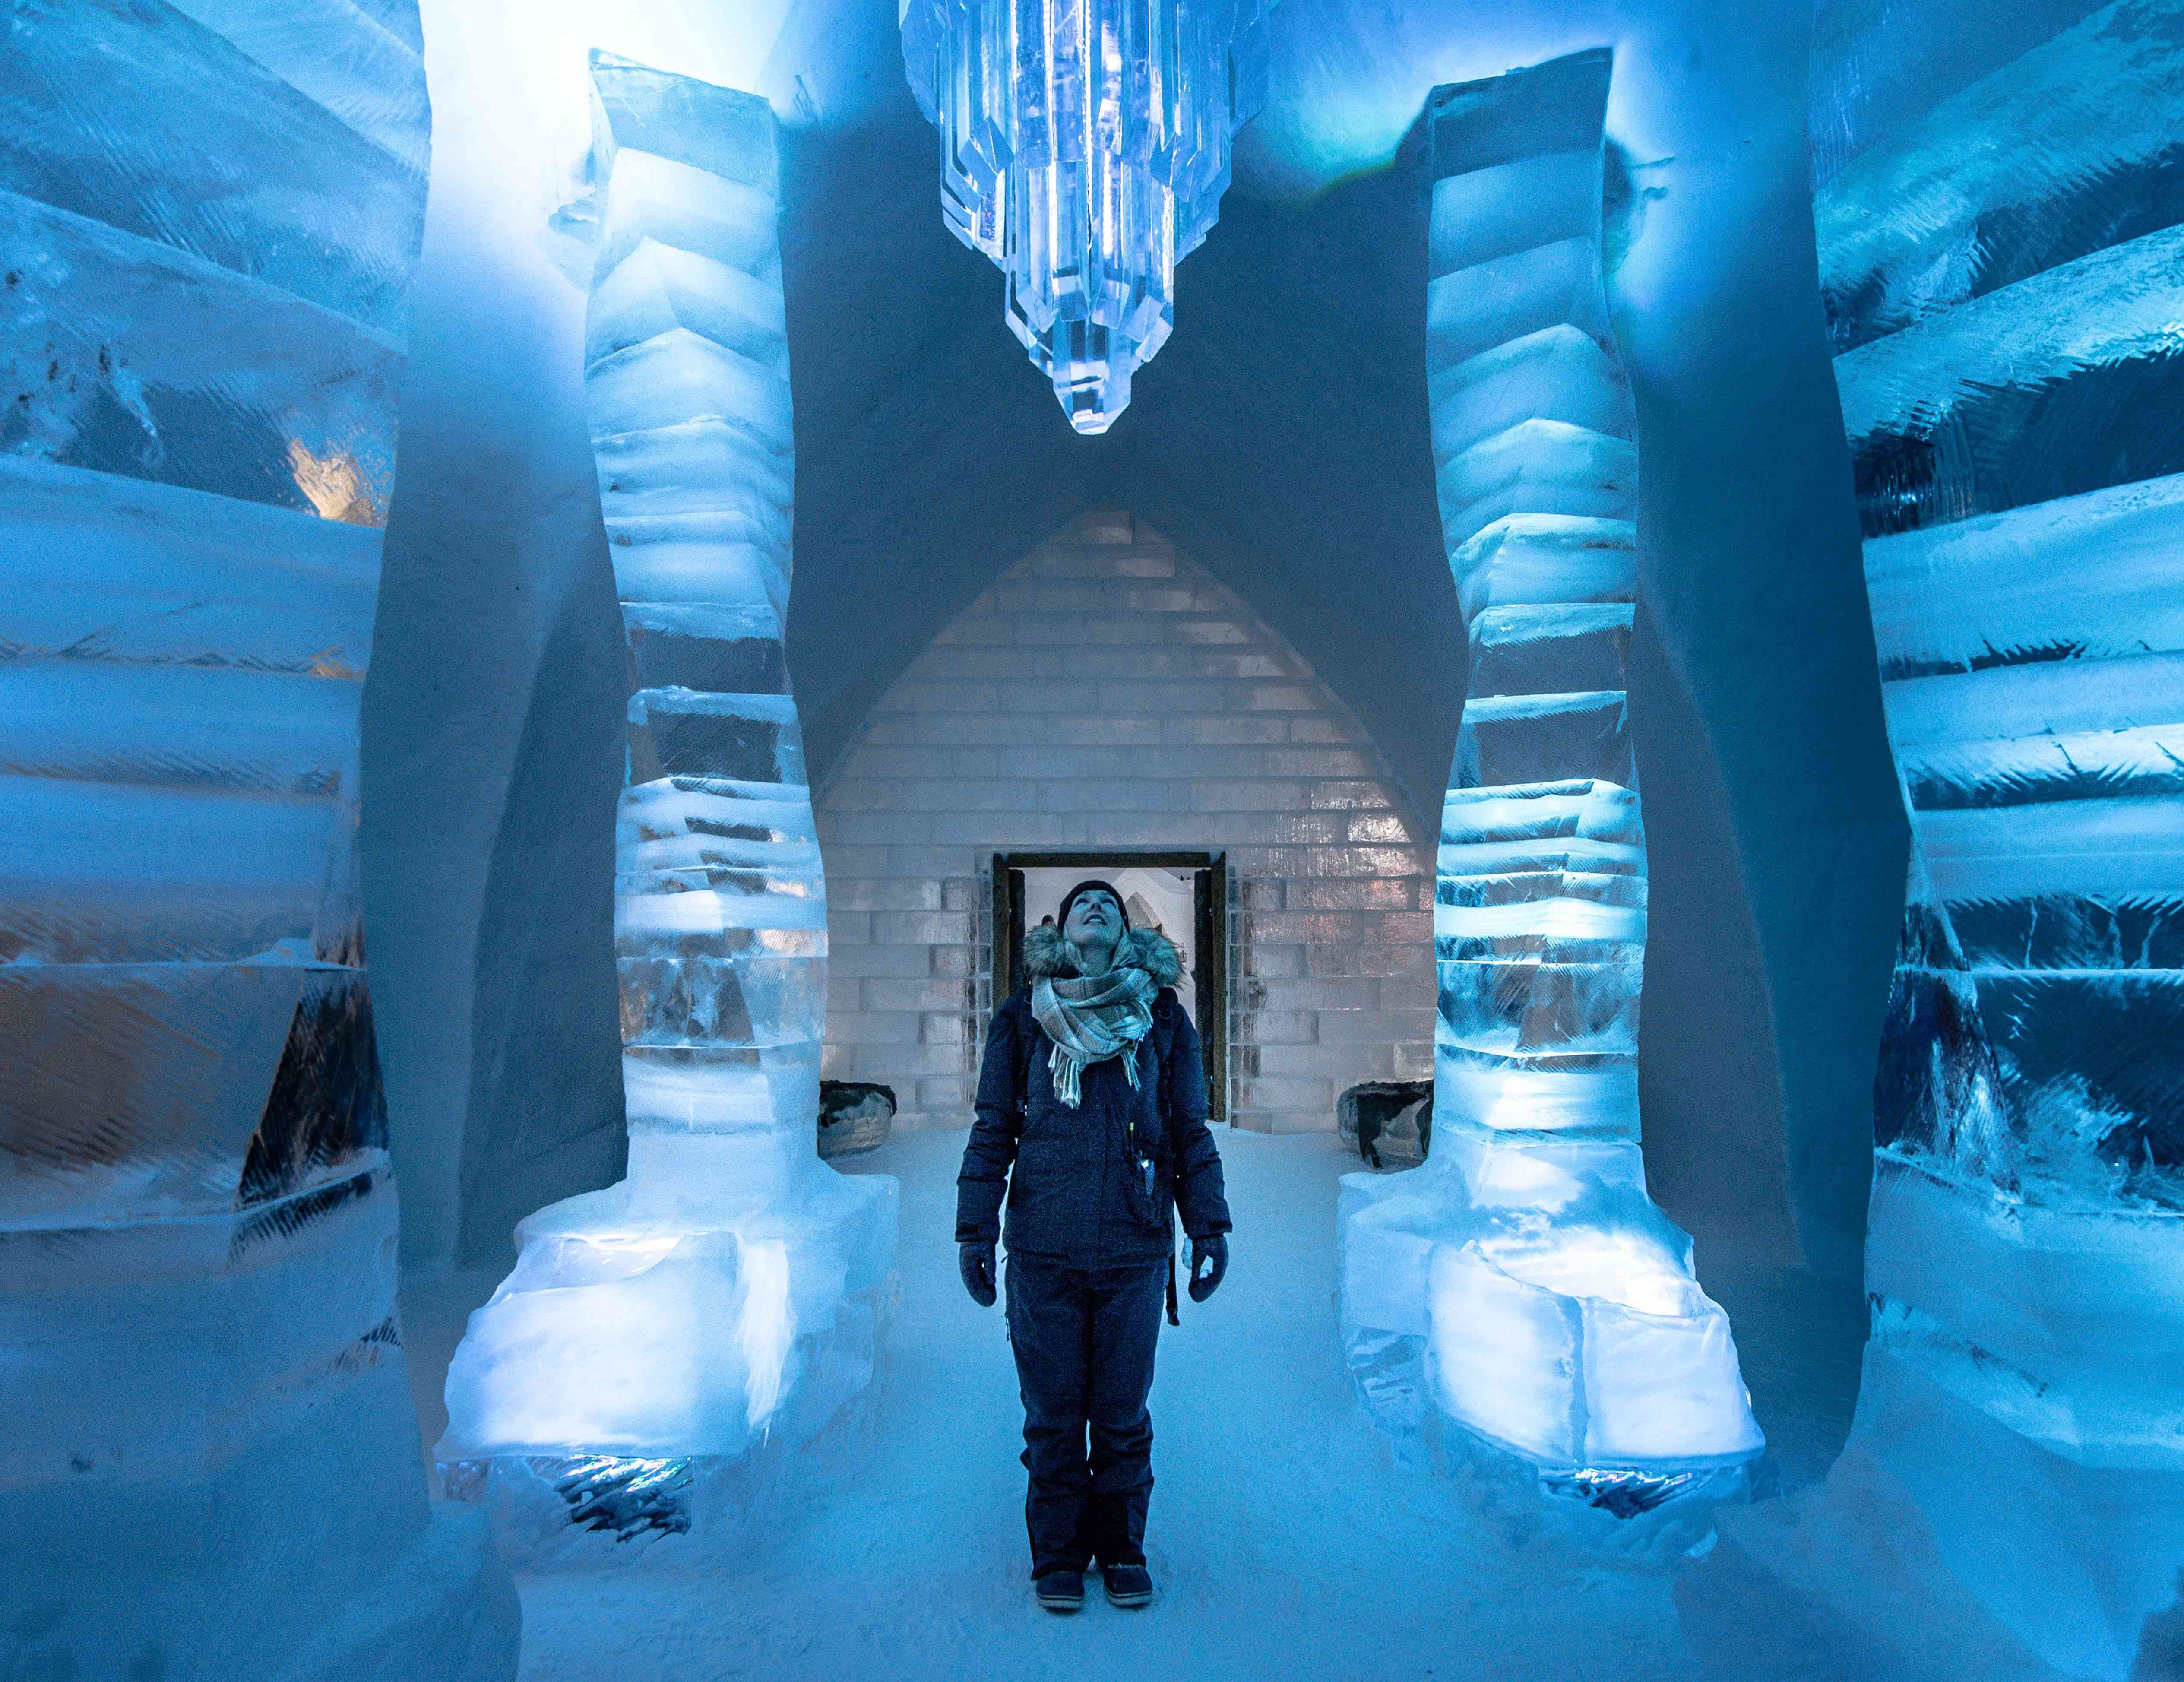 A woman looks up at an ice sculpture at Hotel de Glace